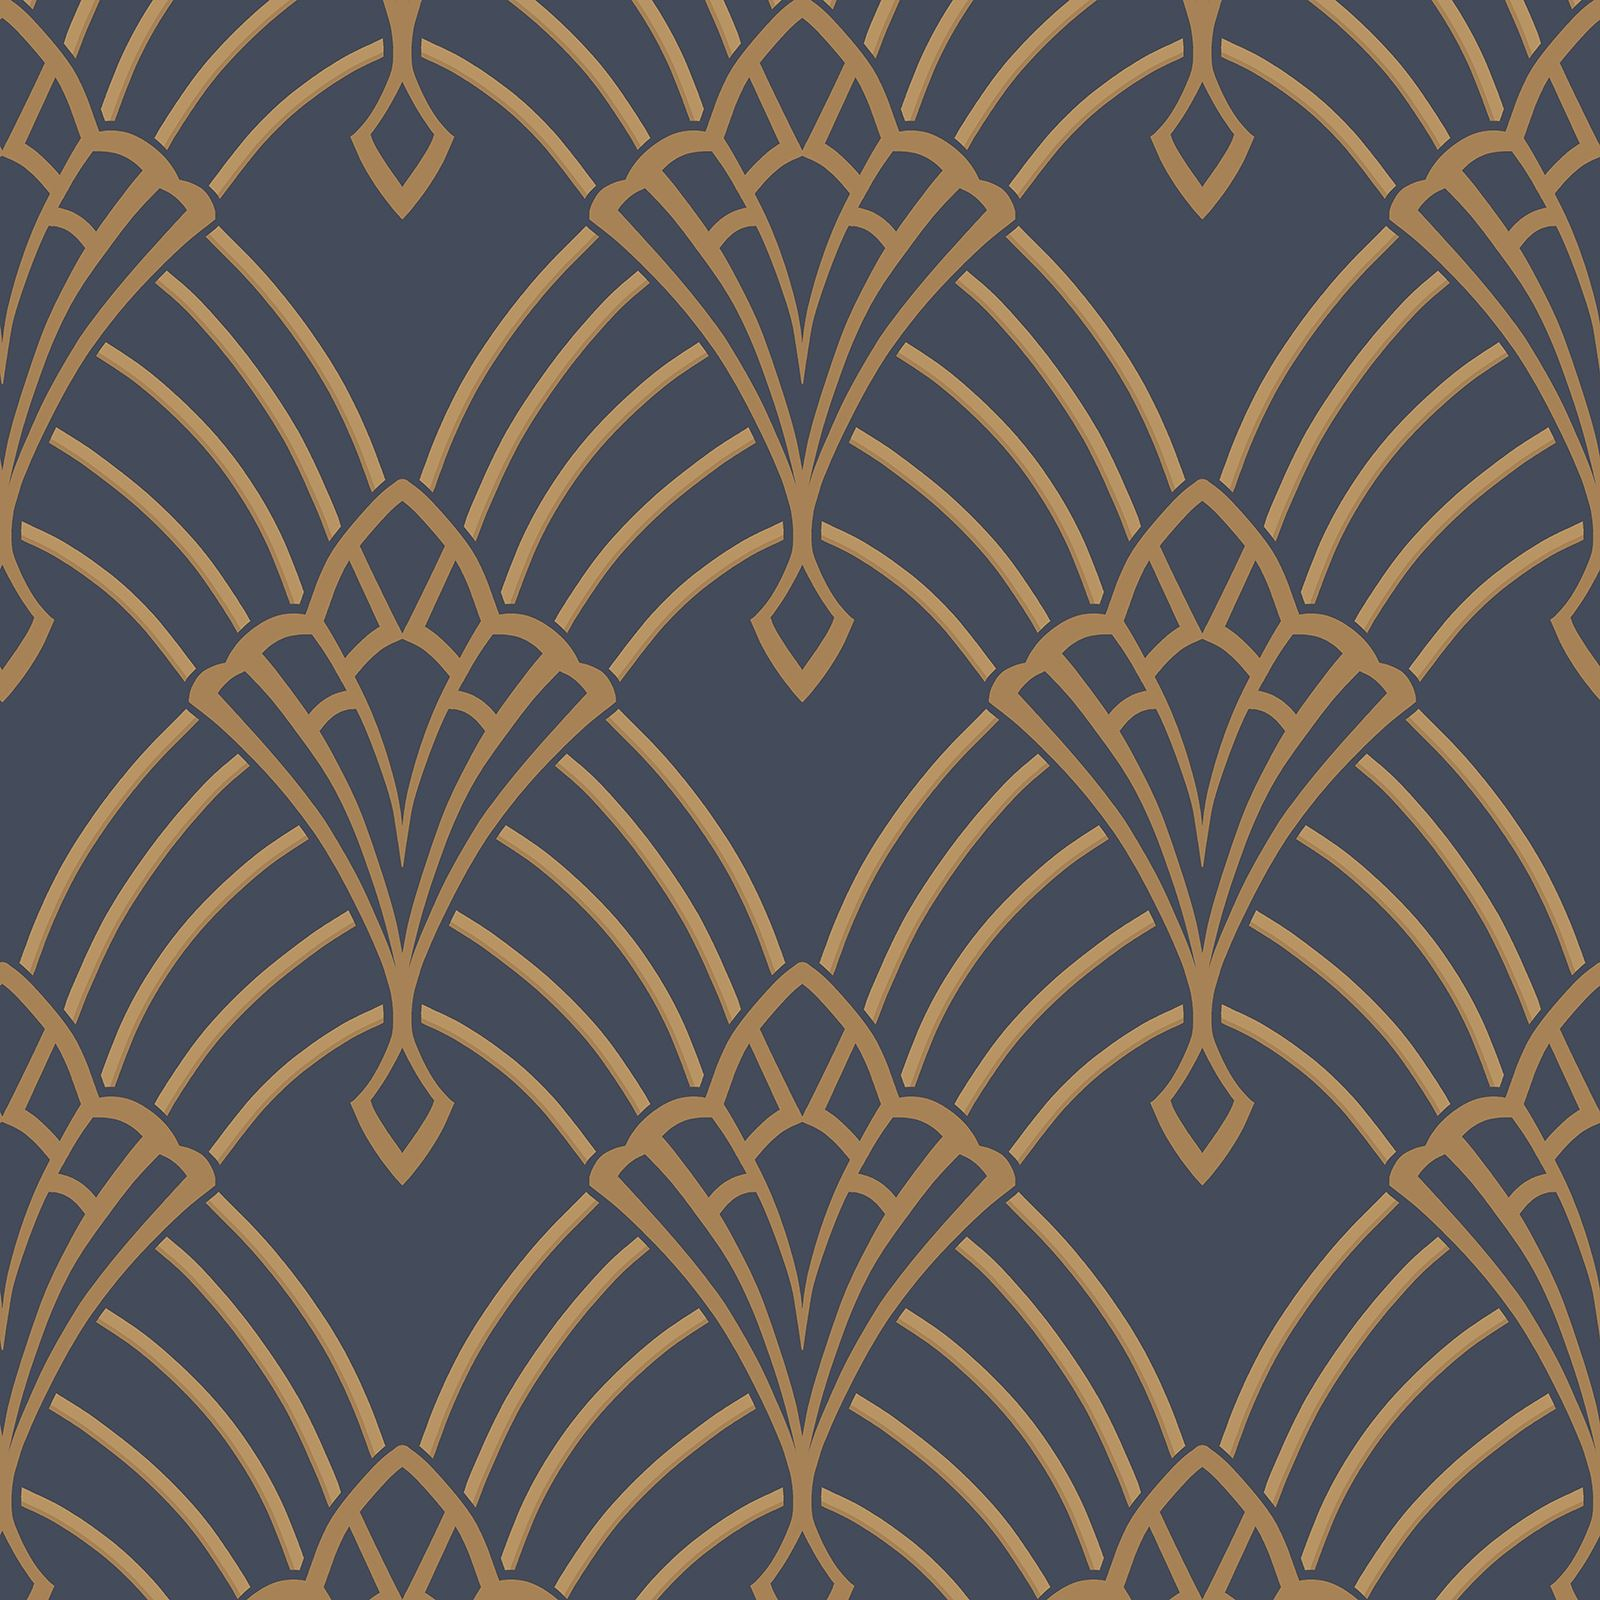 ASTORIA ART DECO WALLPAPER DARK BLUE GOLD